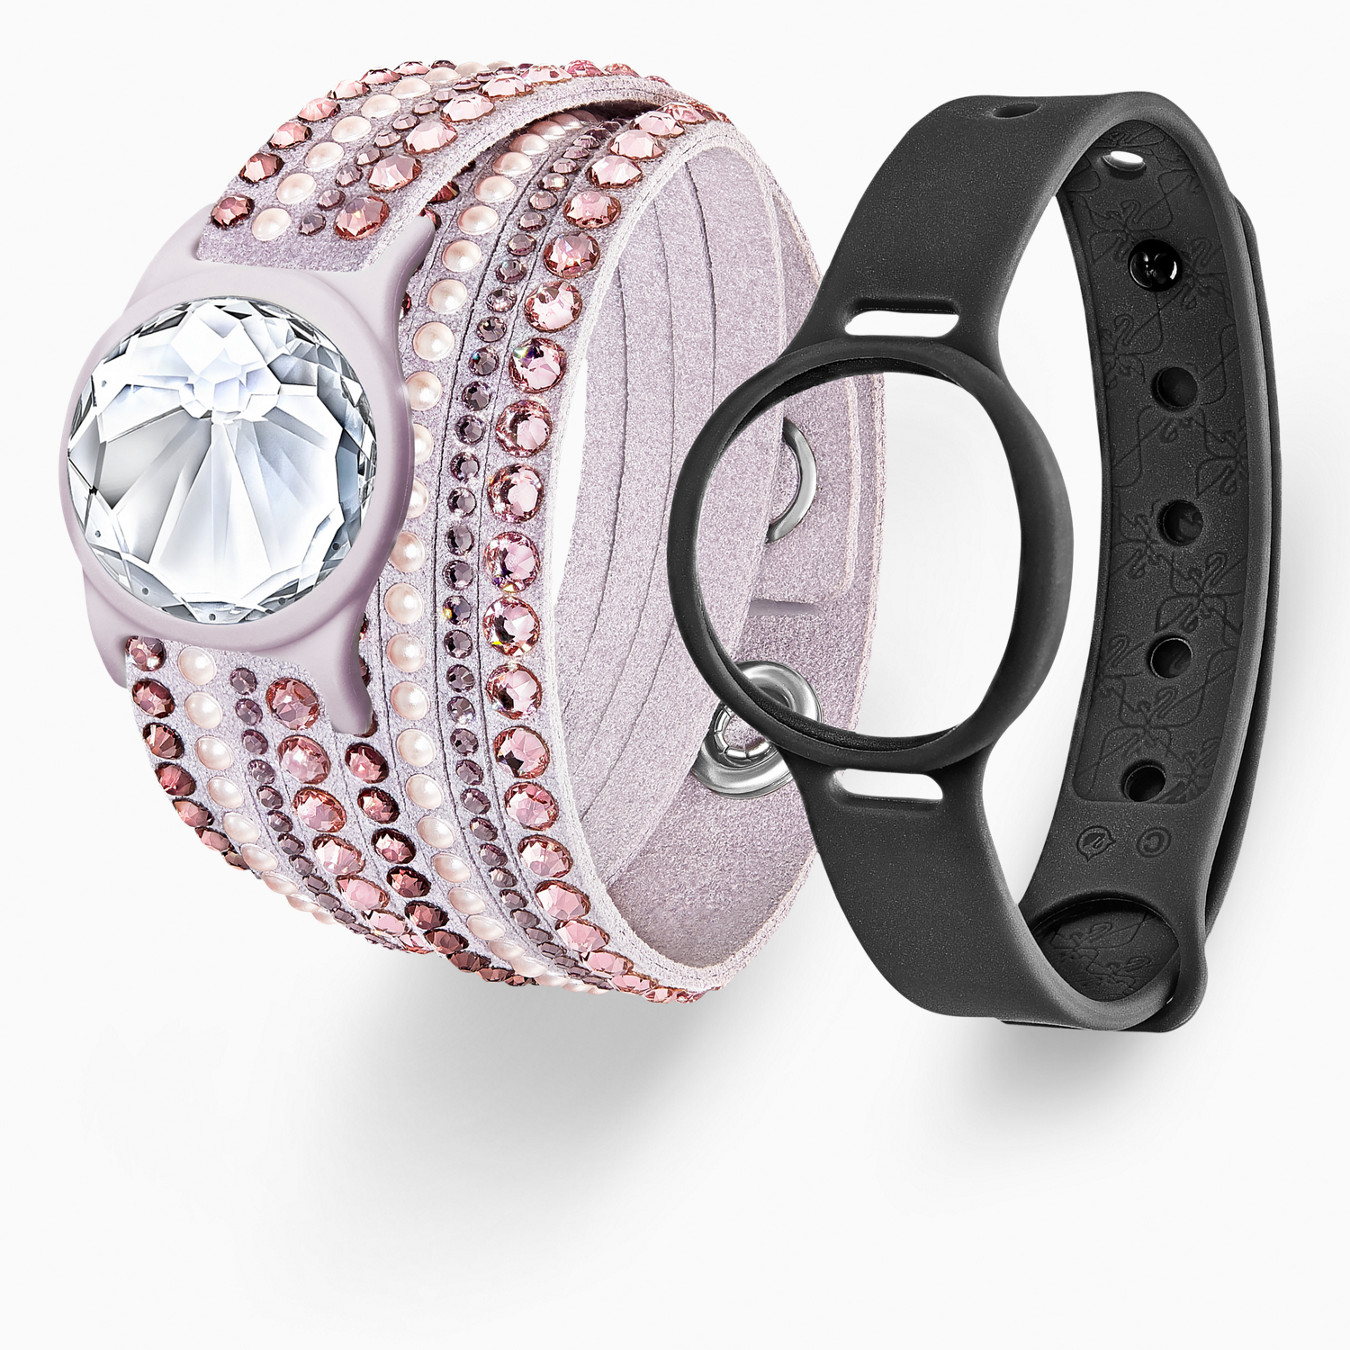 Swarovski Activity Crystal Slake - Misfit 193b5afbc7